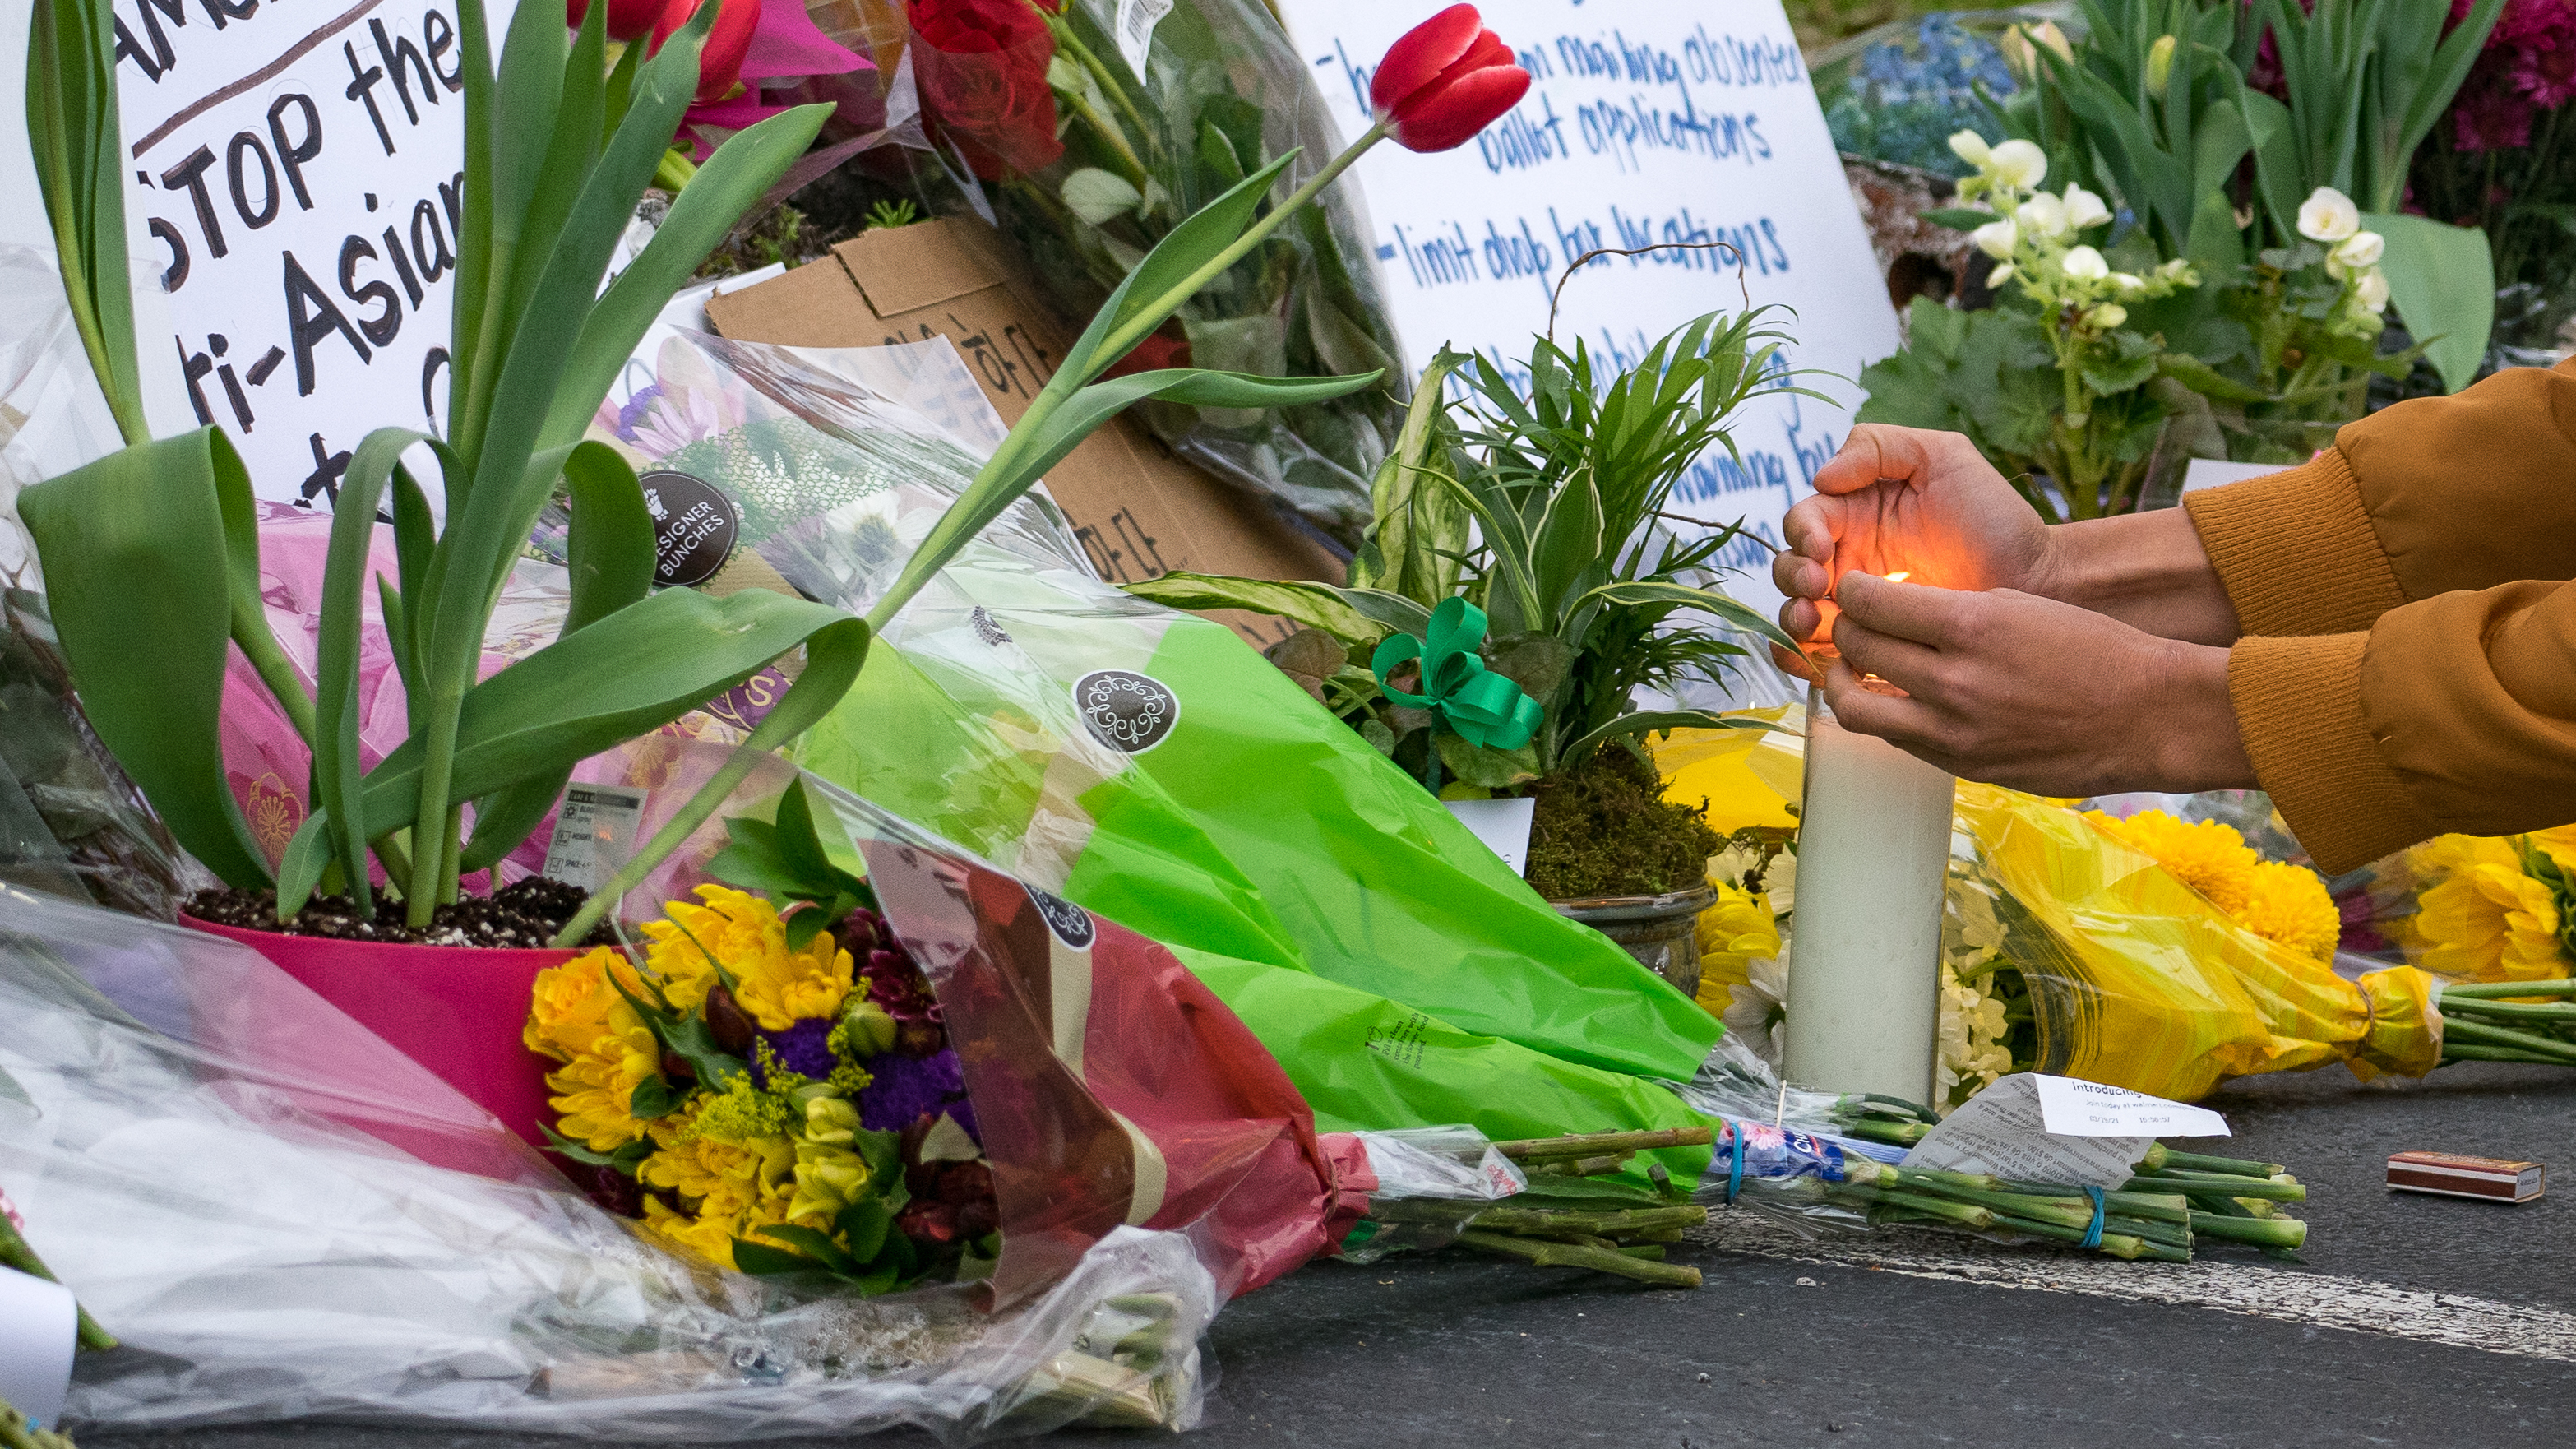 Mourners paid their respects at a makeshift memorial outside of Gold Spa on March 19 in Atlanta, Ga., after shootings at three area spas killed eight people, including six women of Asian descent.